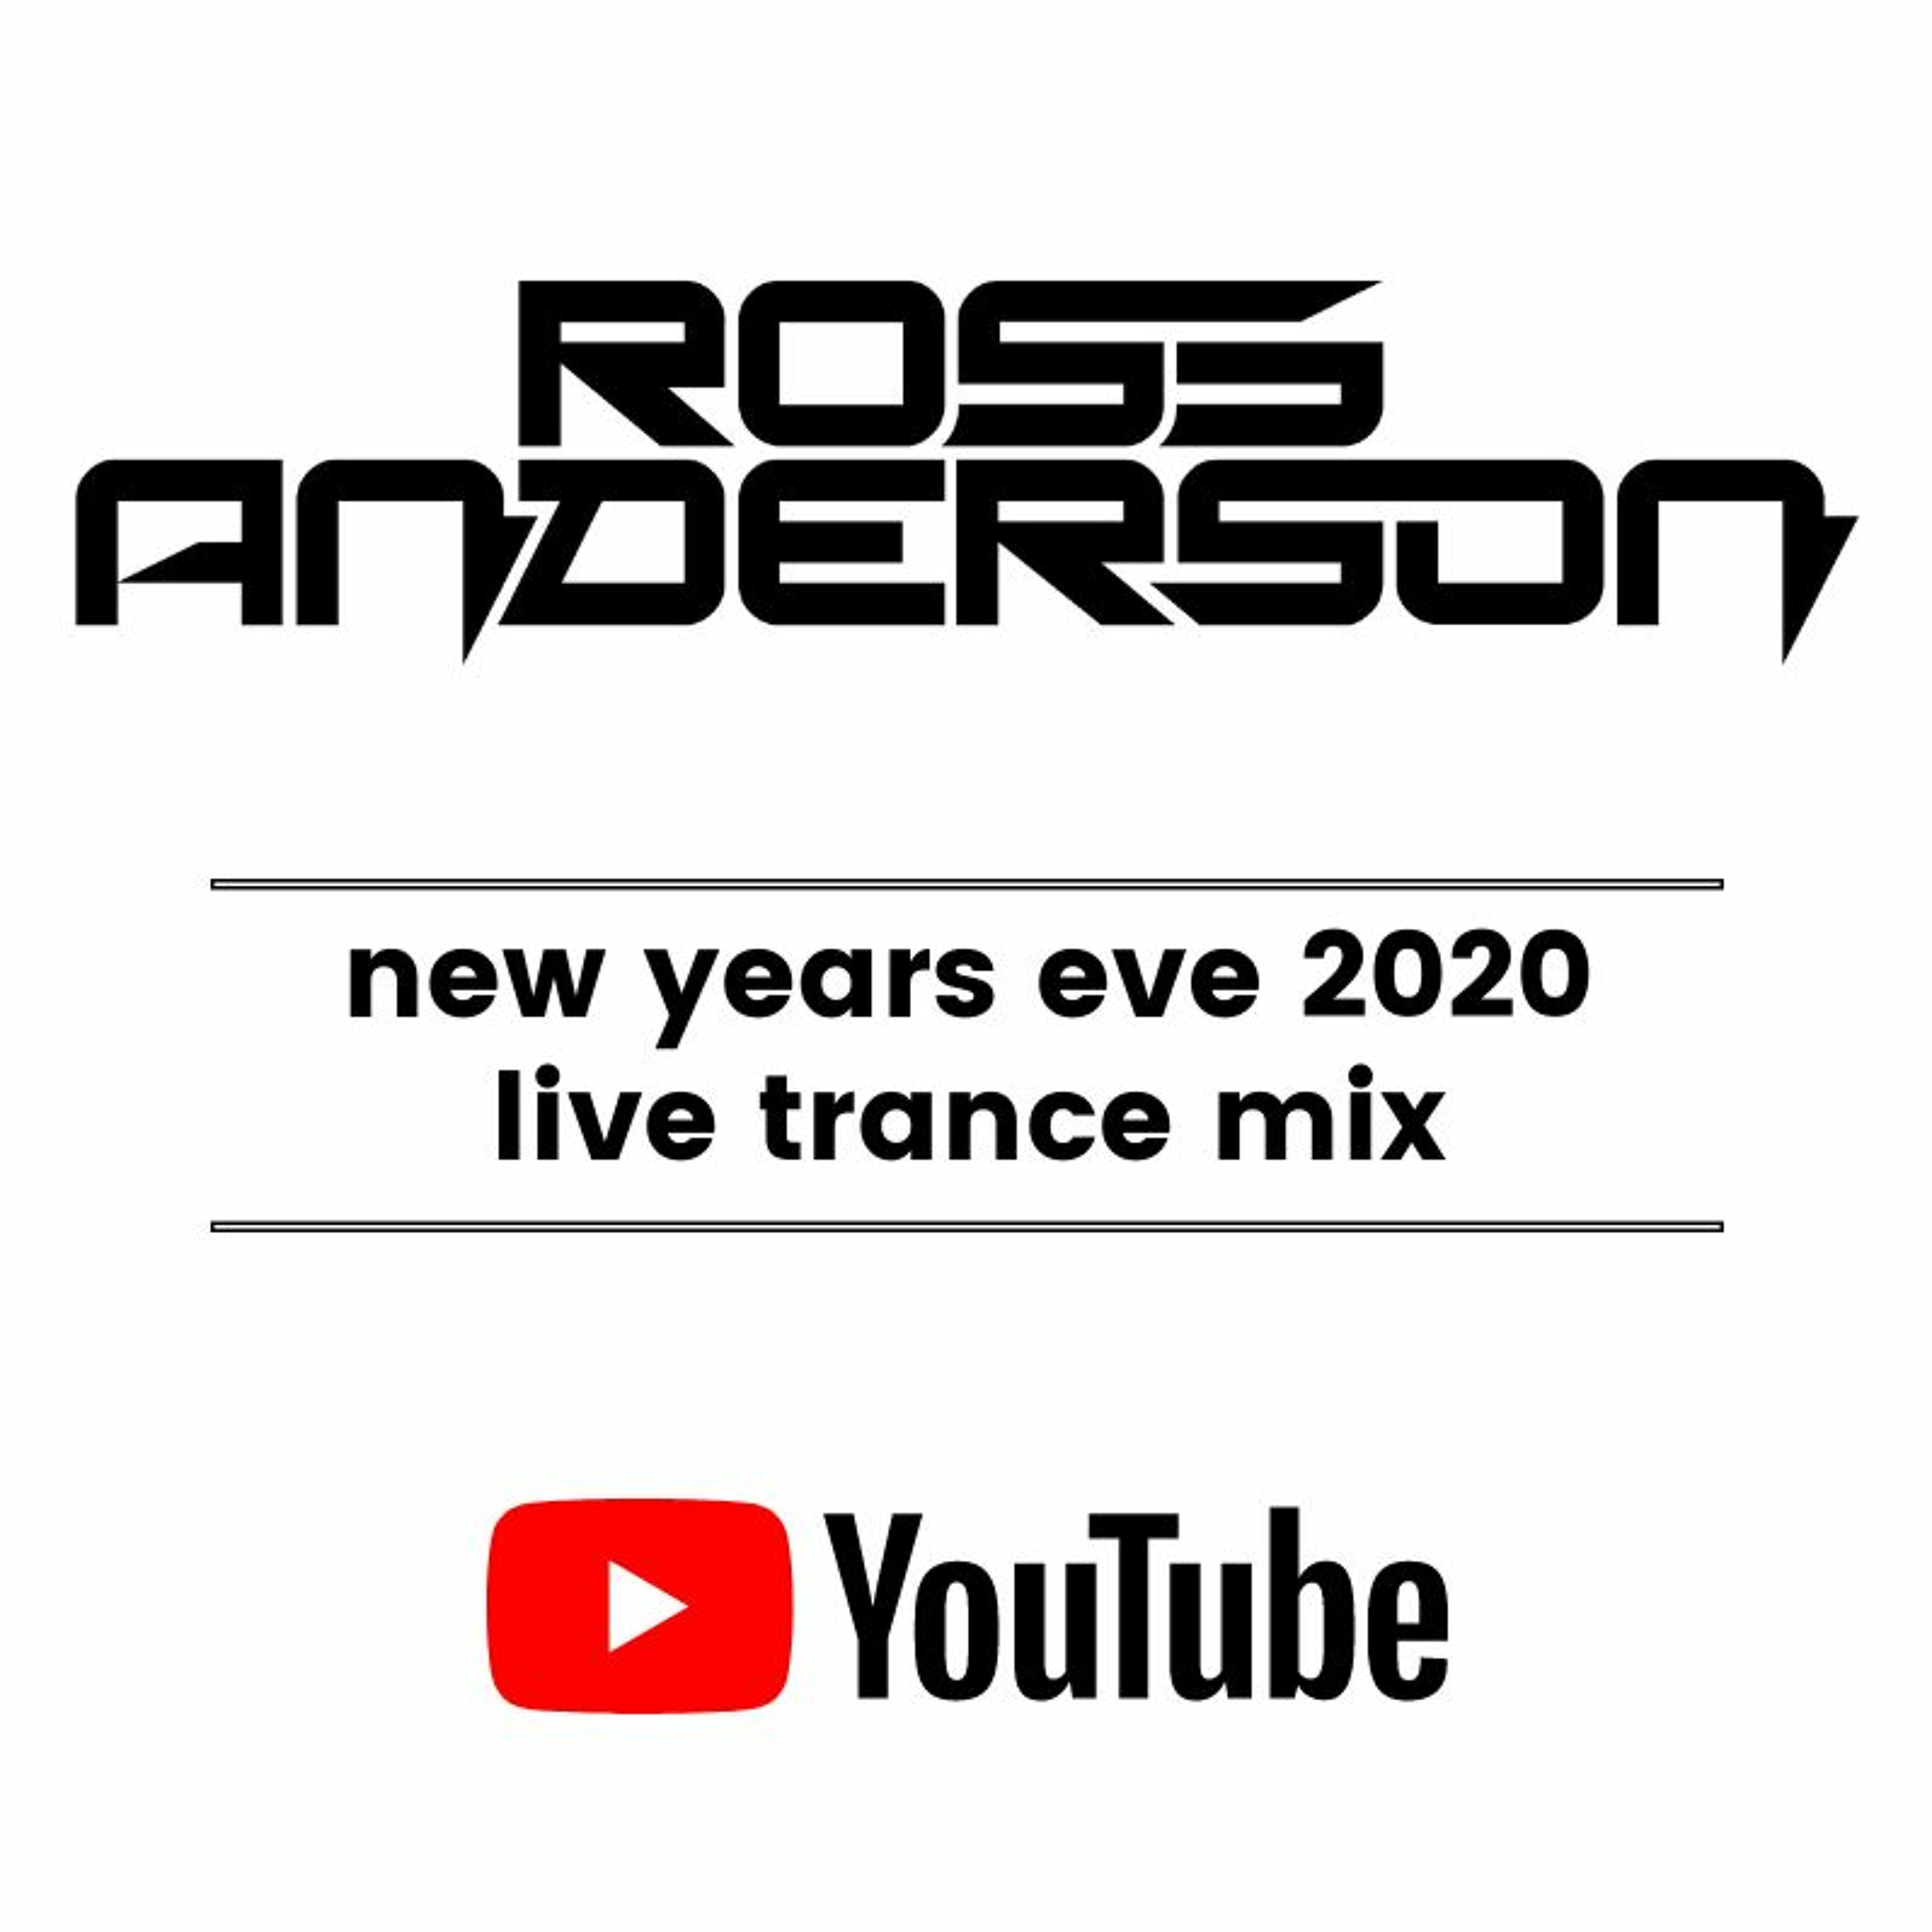 New Years 2020 - Classic Trance Live